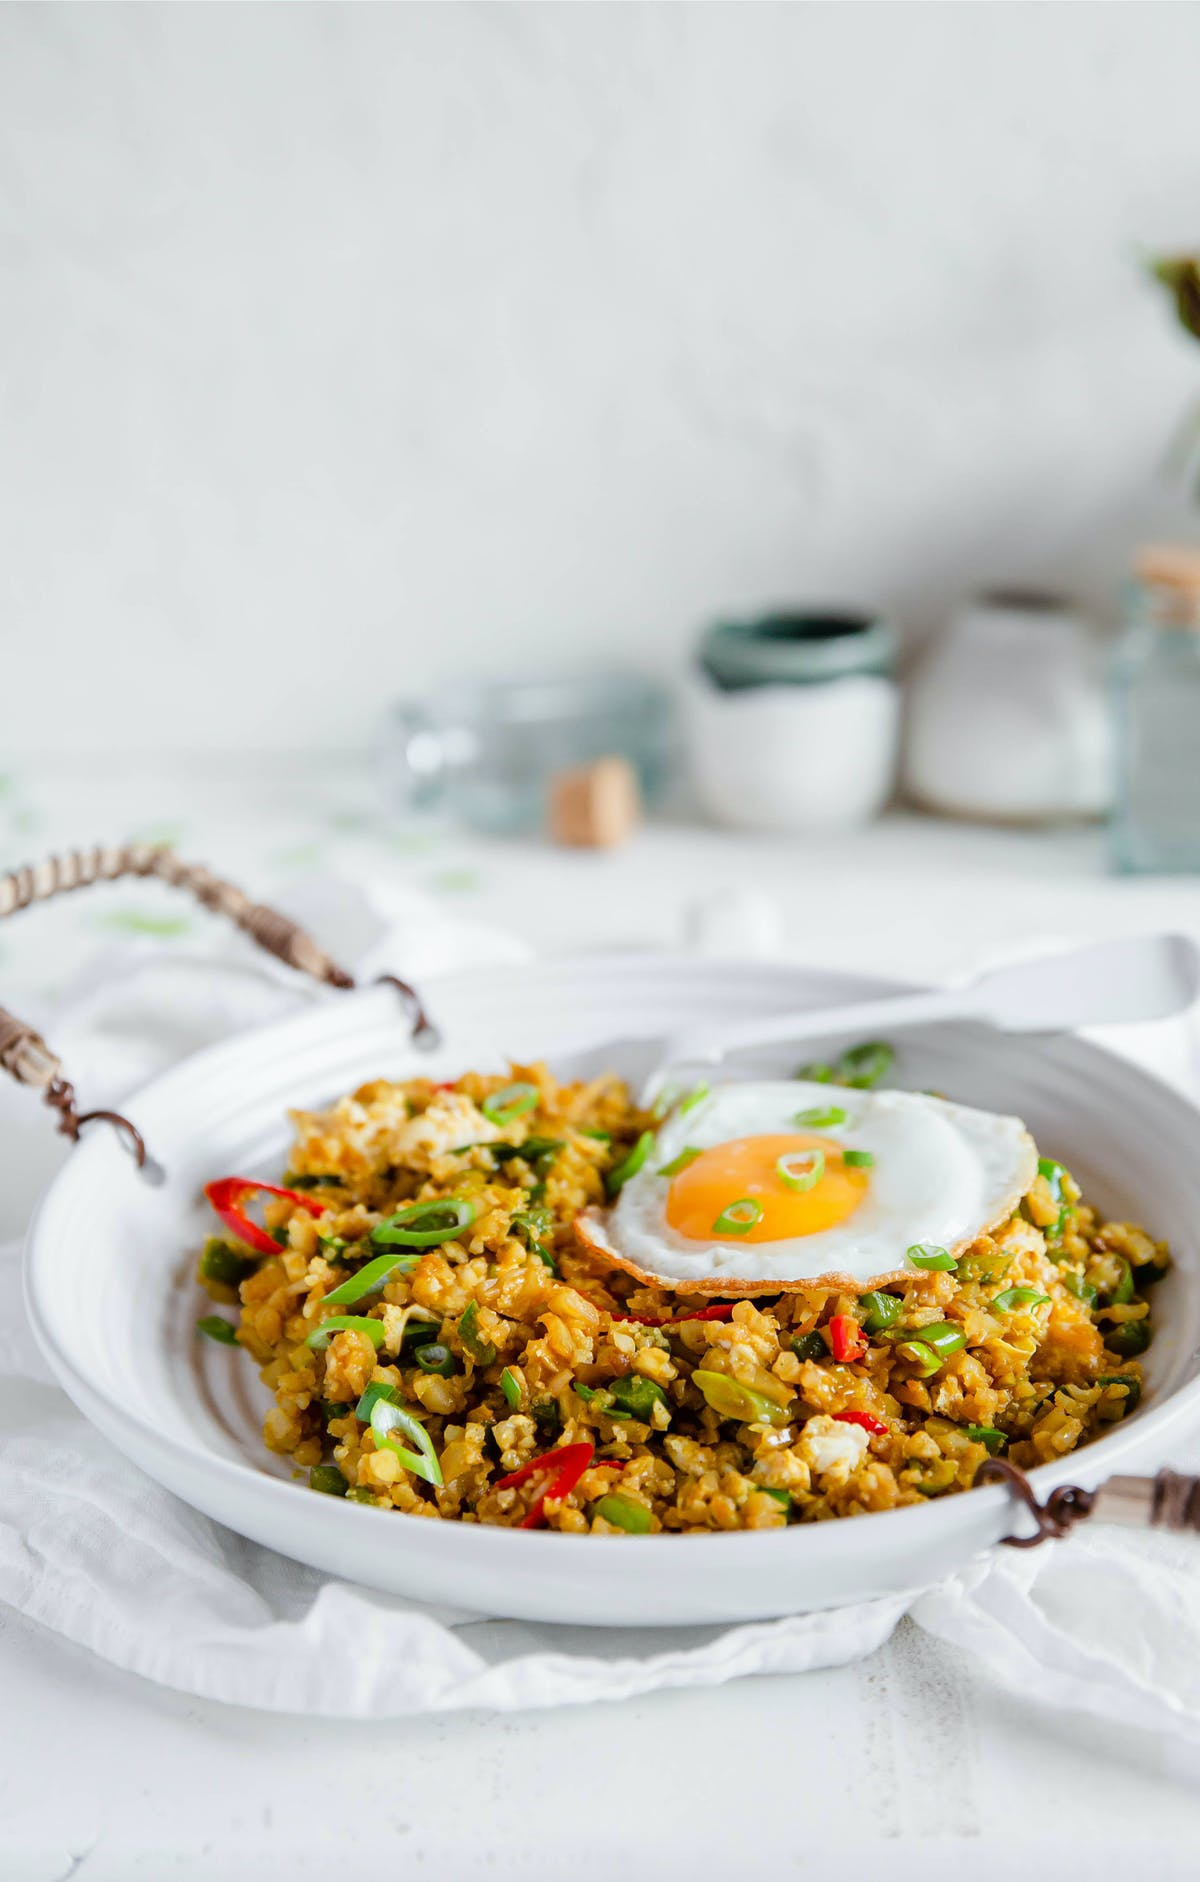 Low-carb Nasi Goreng